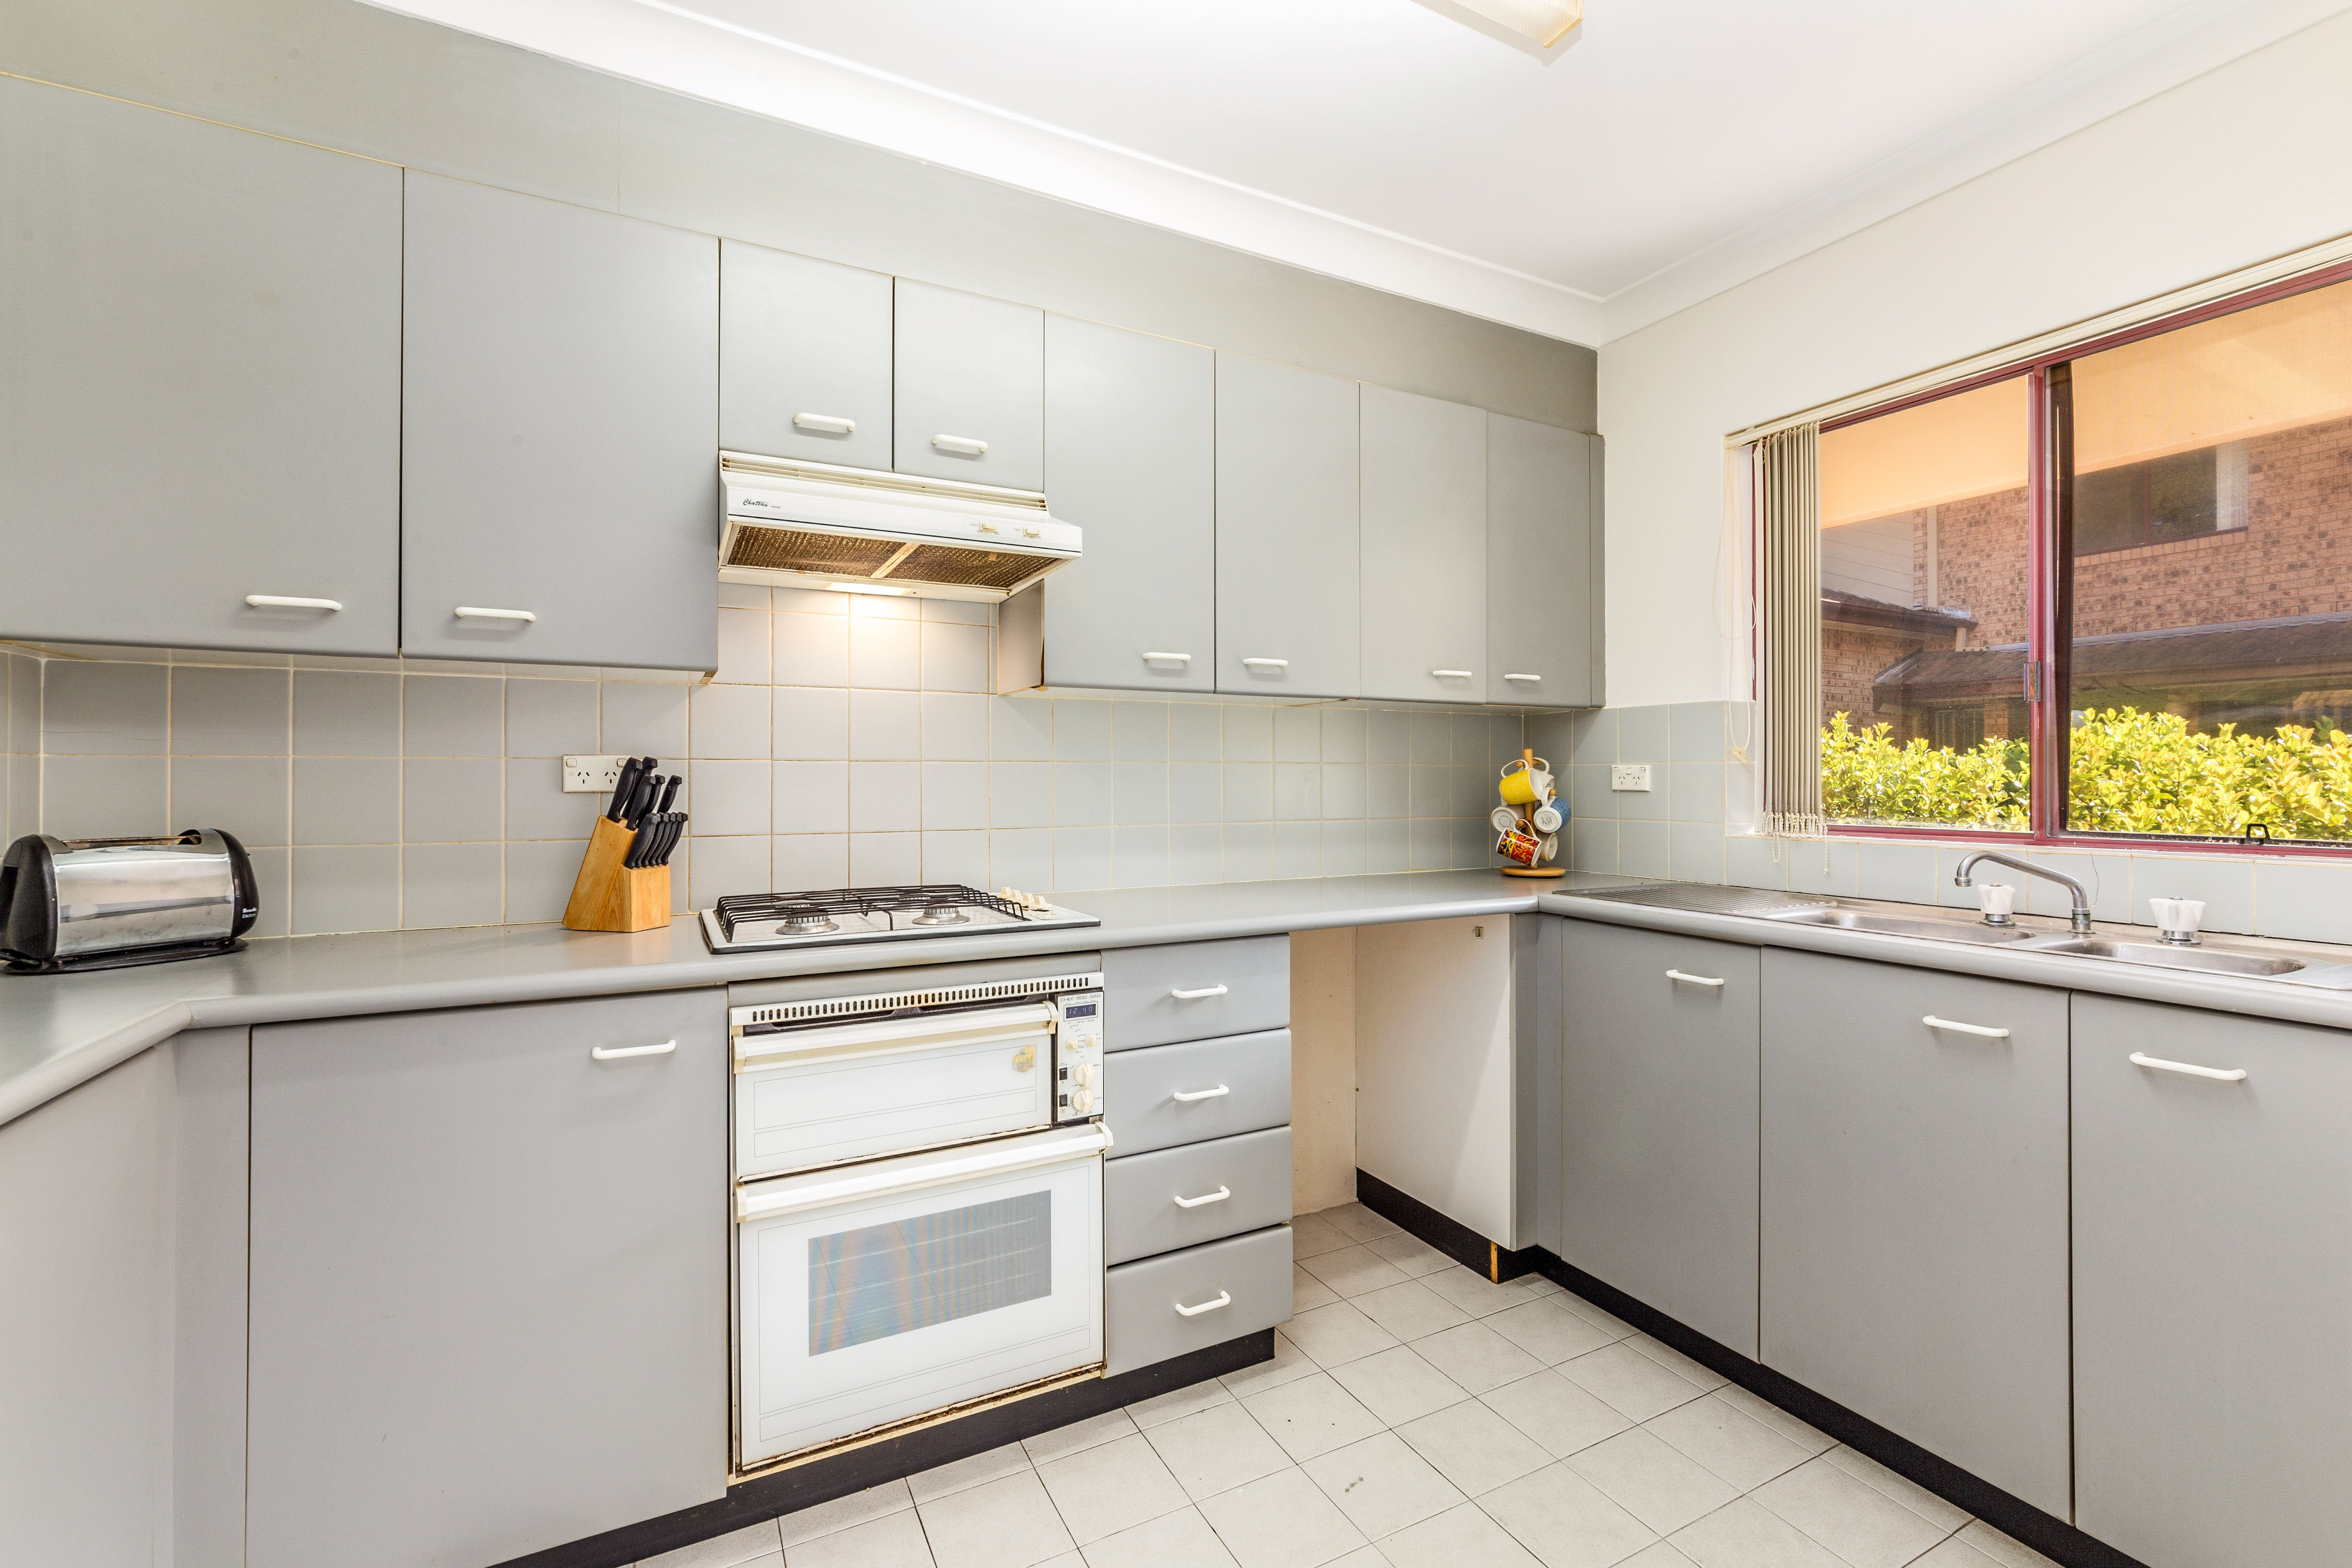 9/42-46 Wentworth Road, Burwood NSW 2134